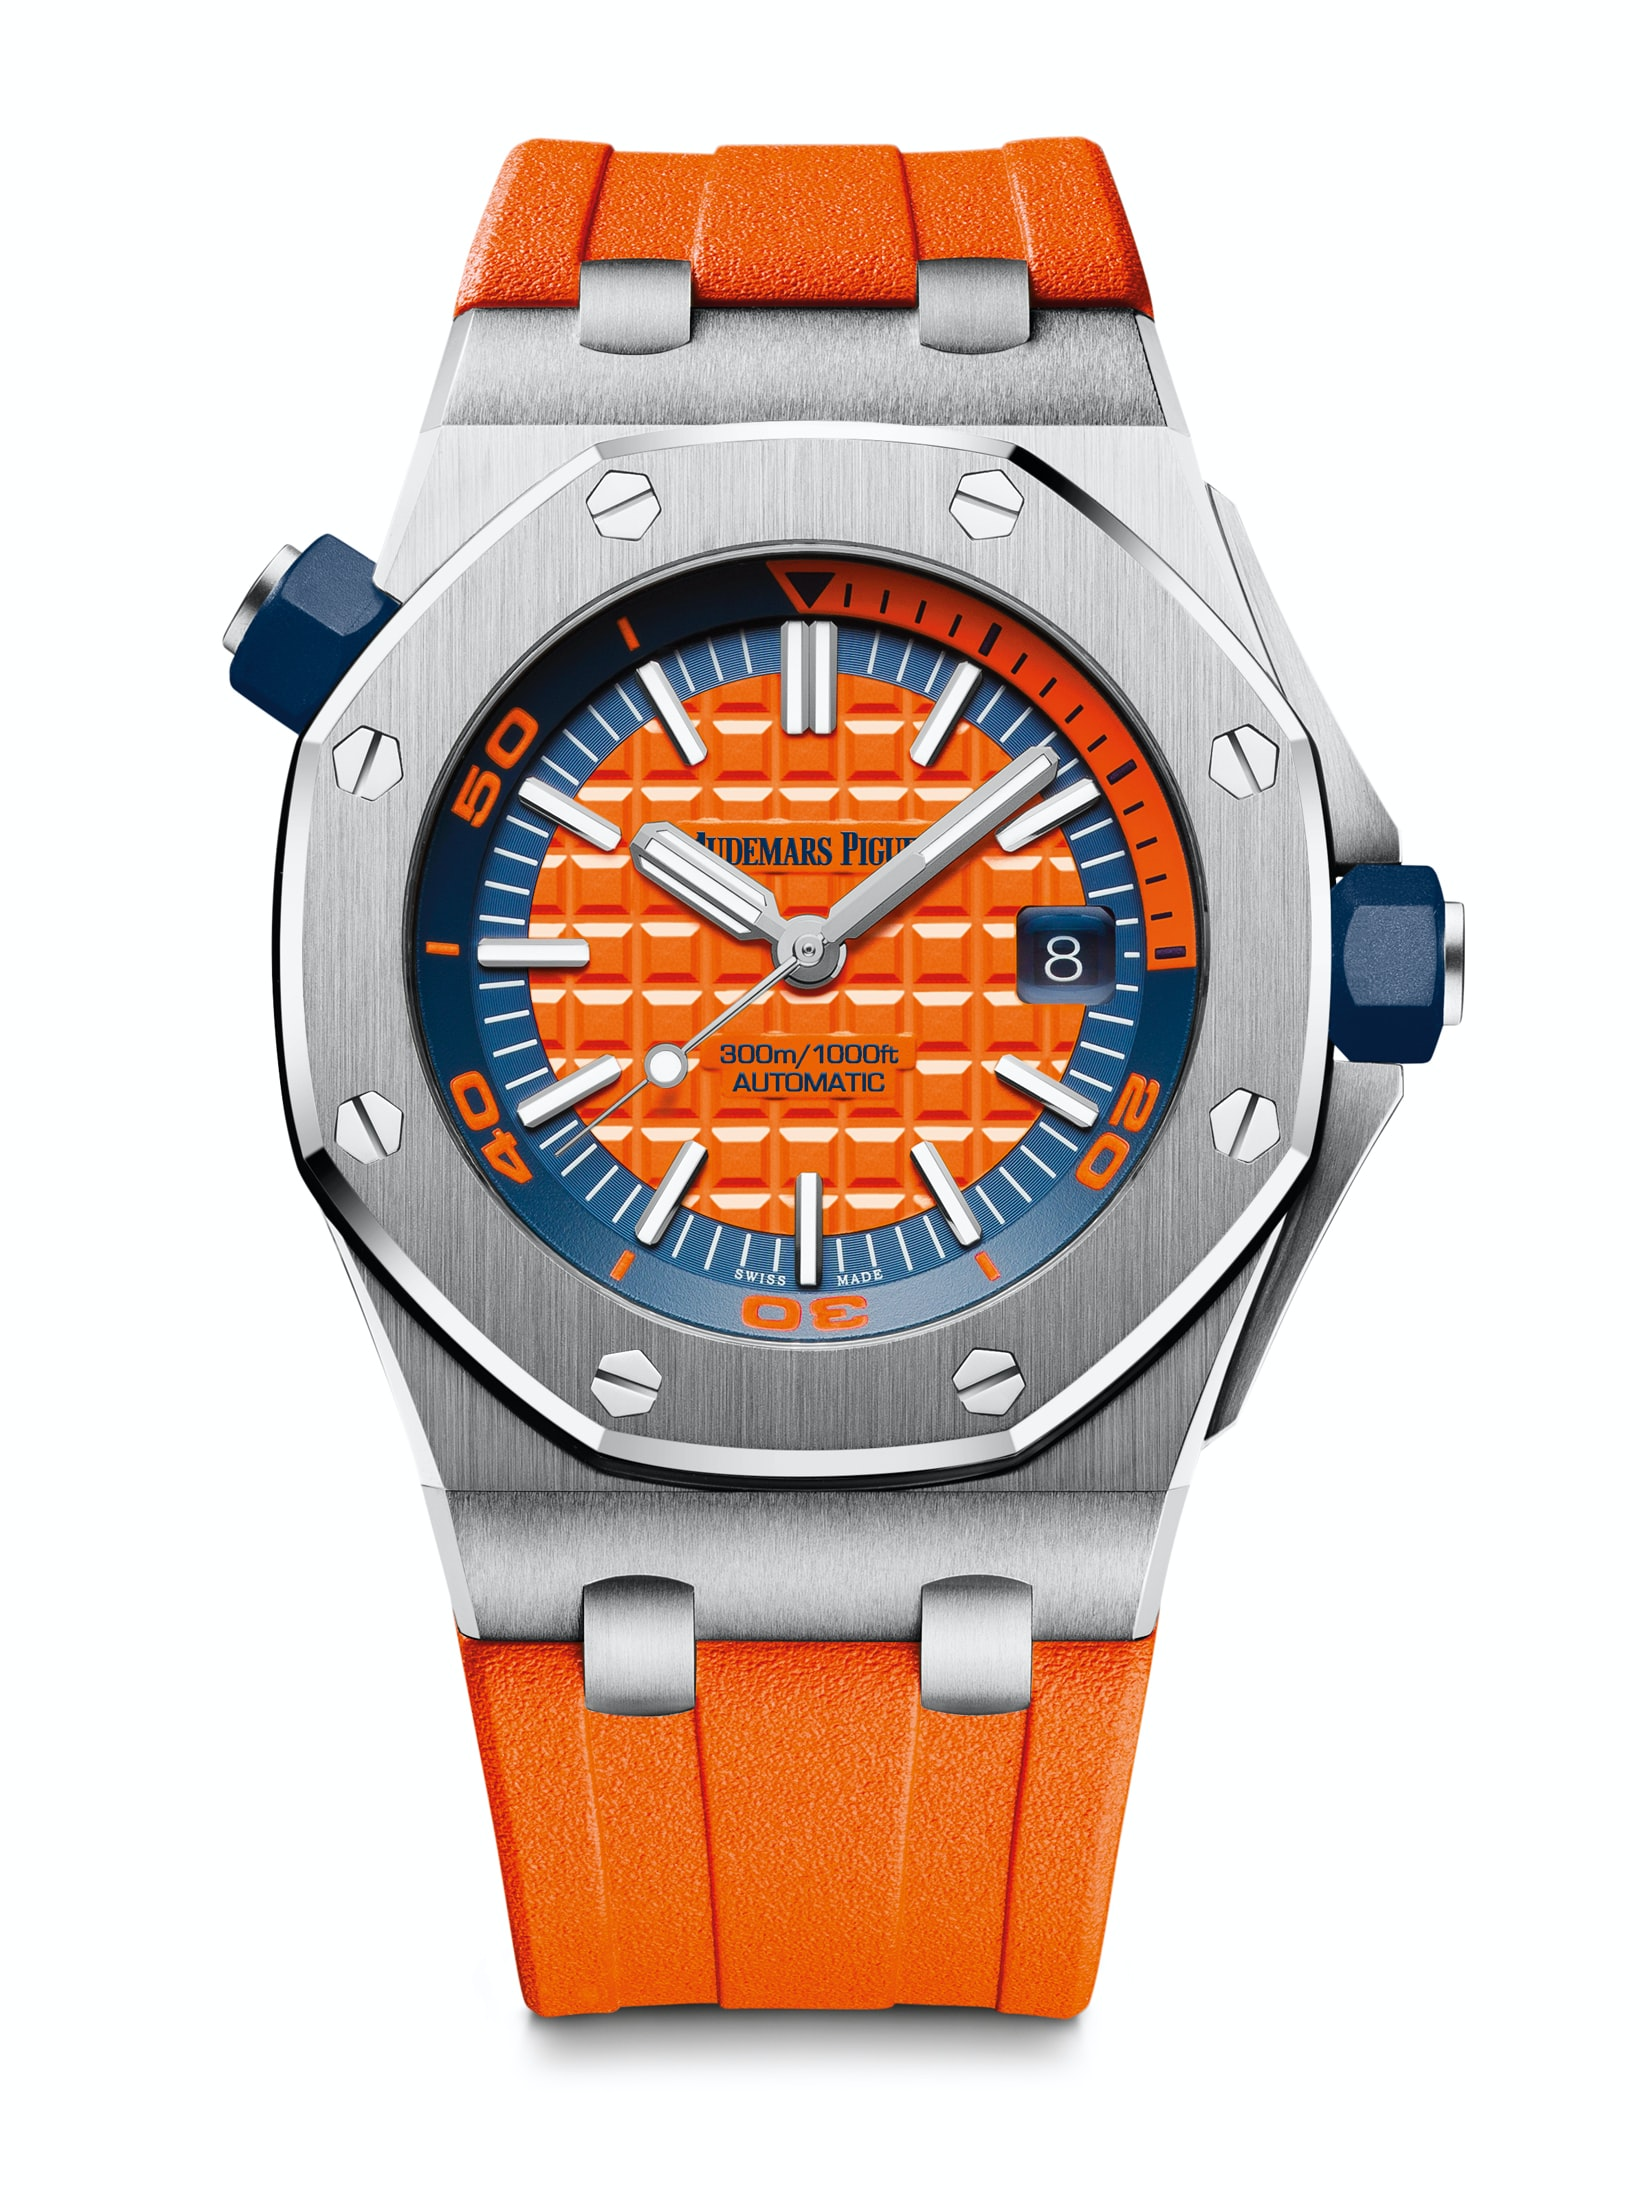 Introducing: The Audemars Piguet Royal Oak Offshore Diver In A Suite Of New (Bright) Colors Introducing: The Audemars Piguet Royal Oak Offshore Diver In A Suite Of New (Bright) Colors diver 06